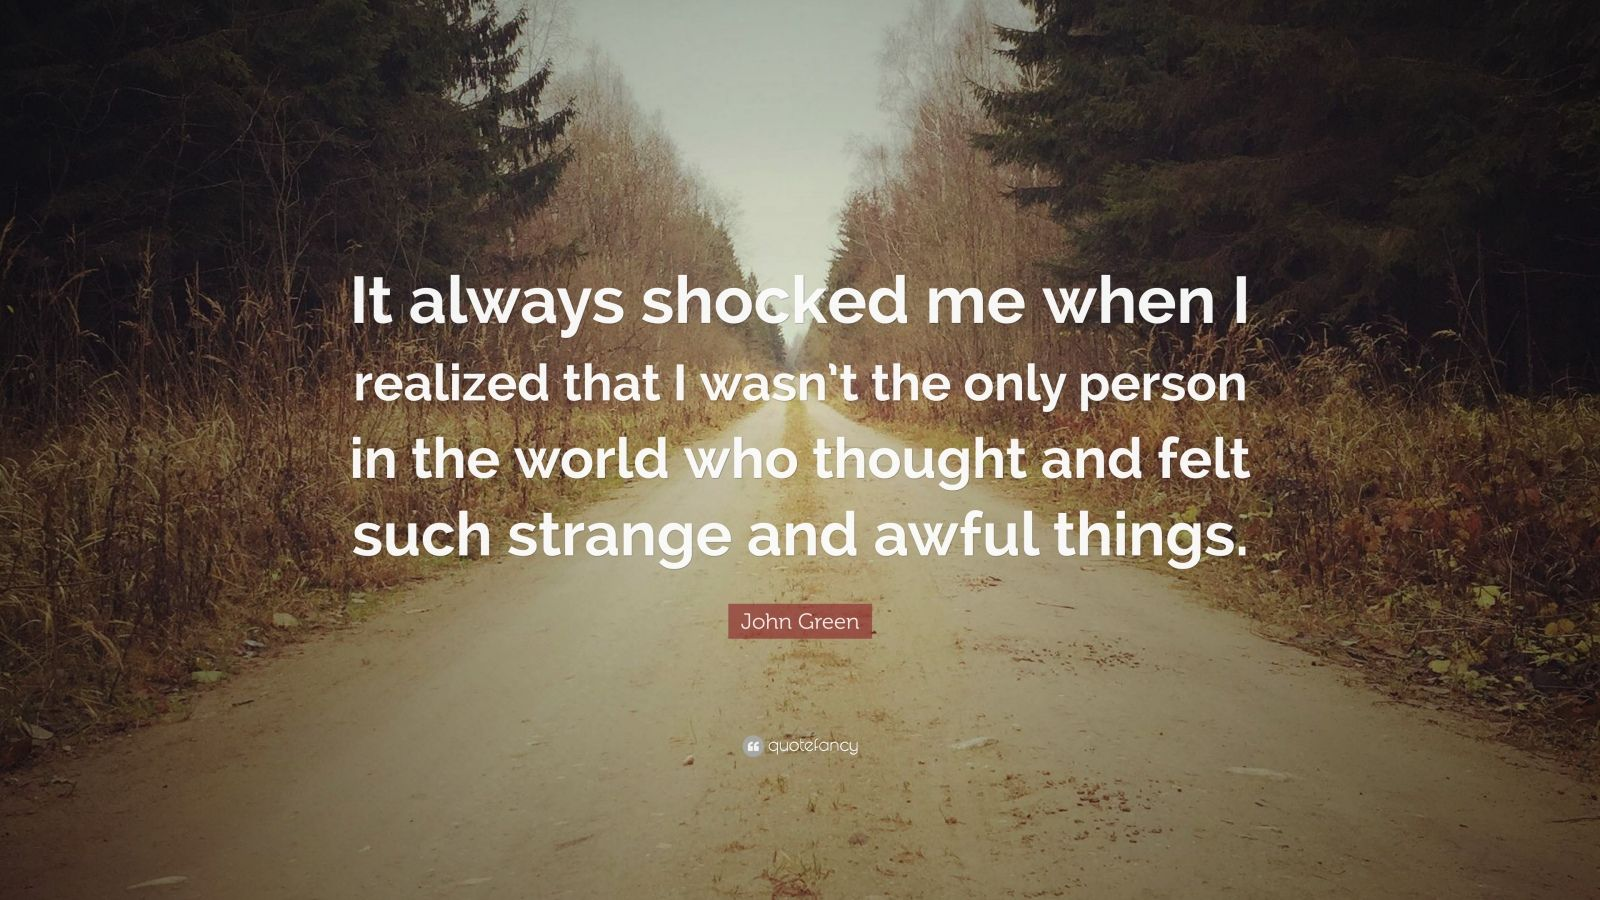 """John Green Quote: """"It always shocked me when I realized that I wasn't the only person in the world who thought and felt such strange and awful things."""""""